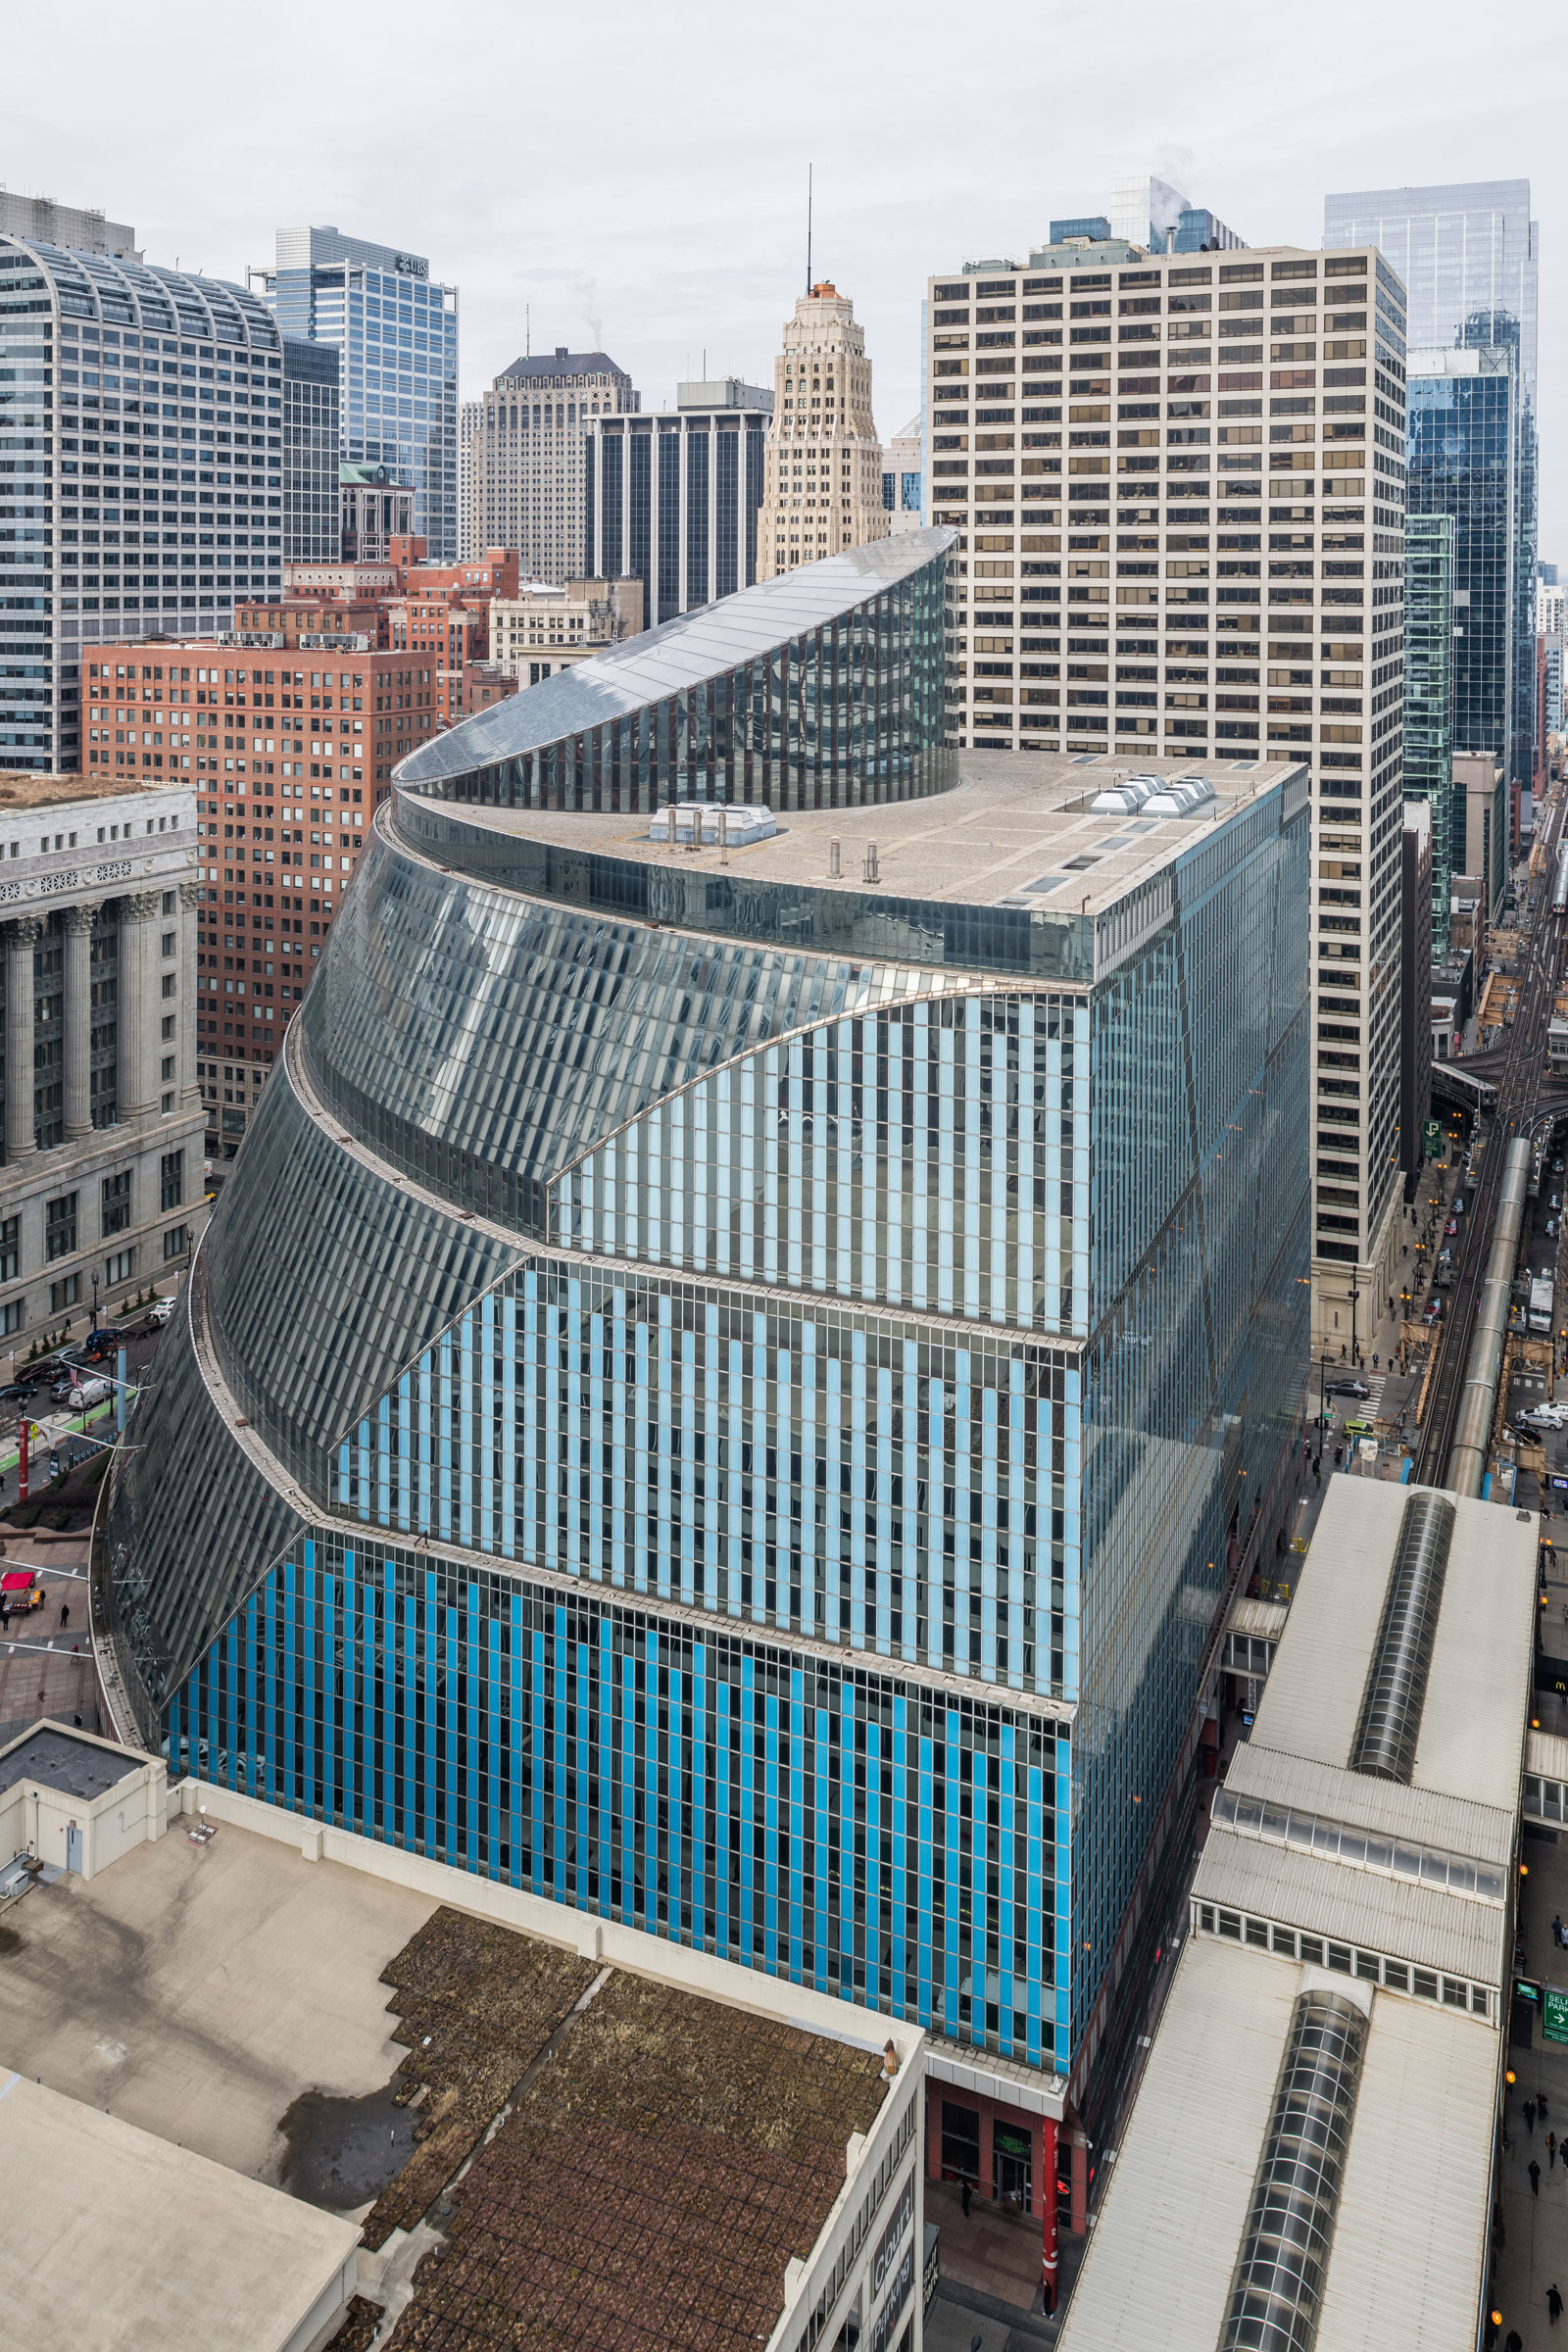 Serhii Chrucky's exterior shot of the Thompson Center for Preservation Chicago